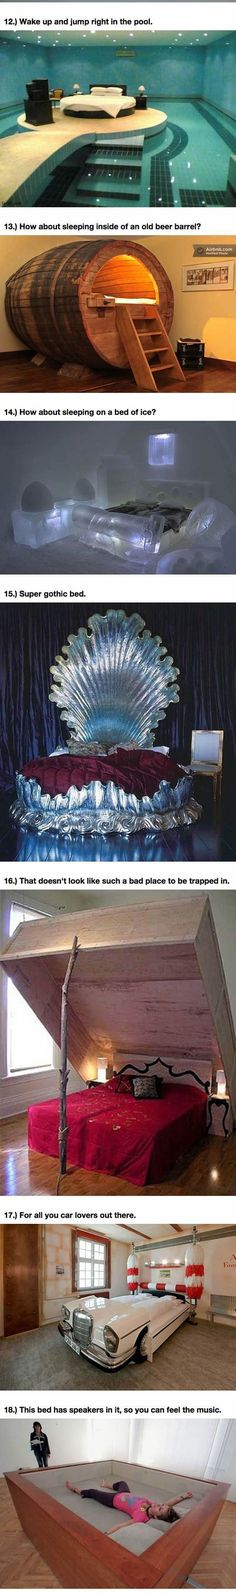 cool-weird-bed-design-shell-pool